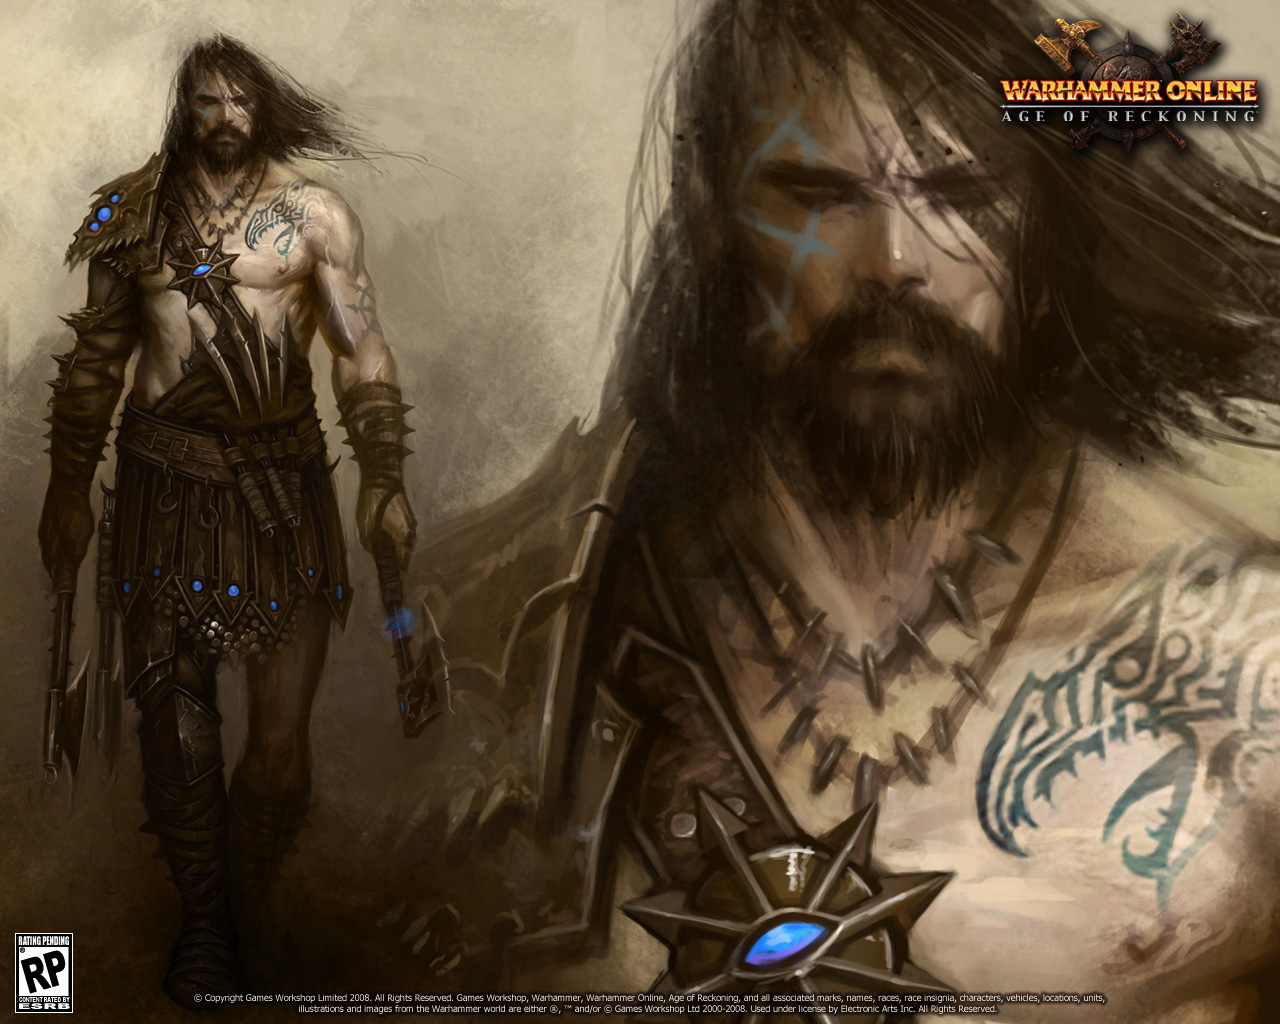 Warhammer Online: Age of Reckoning > Galeries > Wallpapers > PC > 21